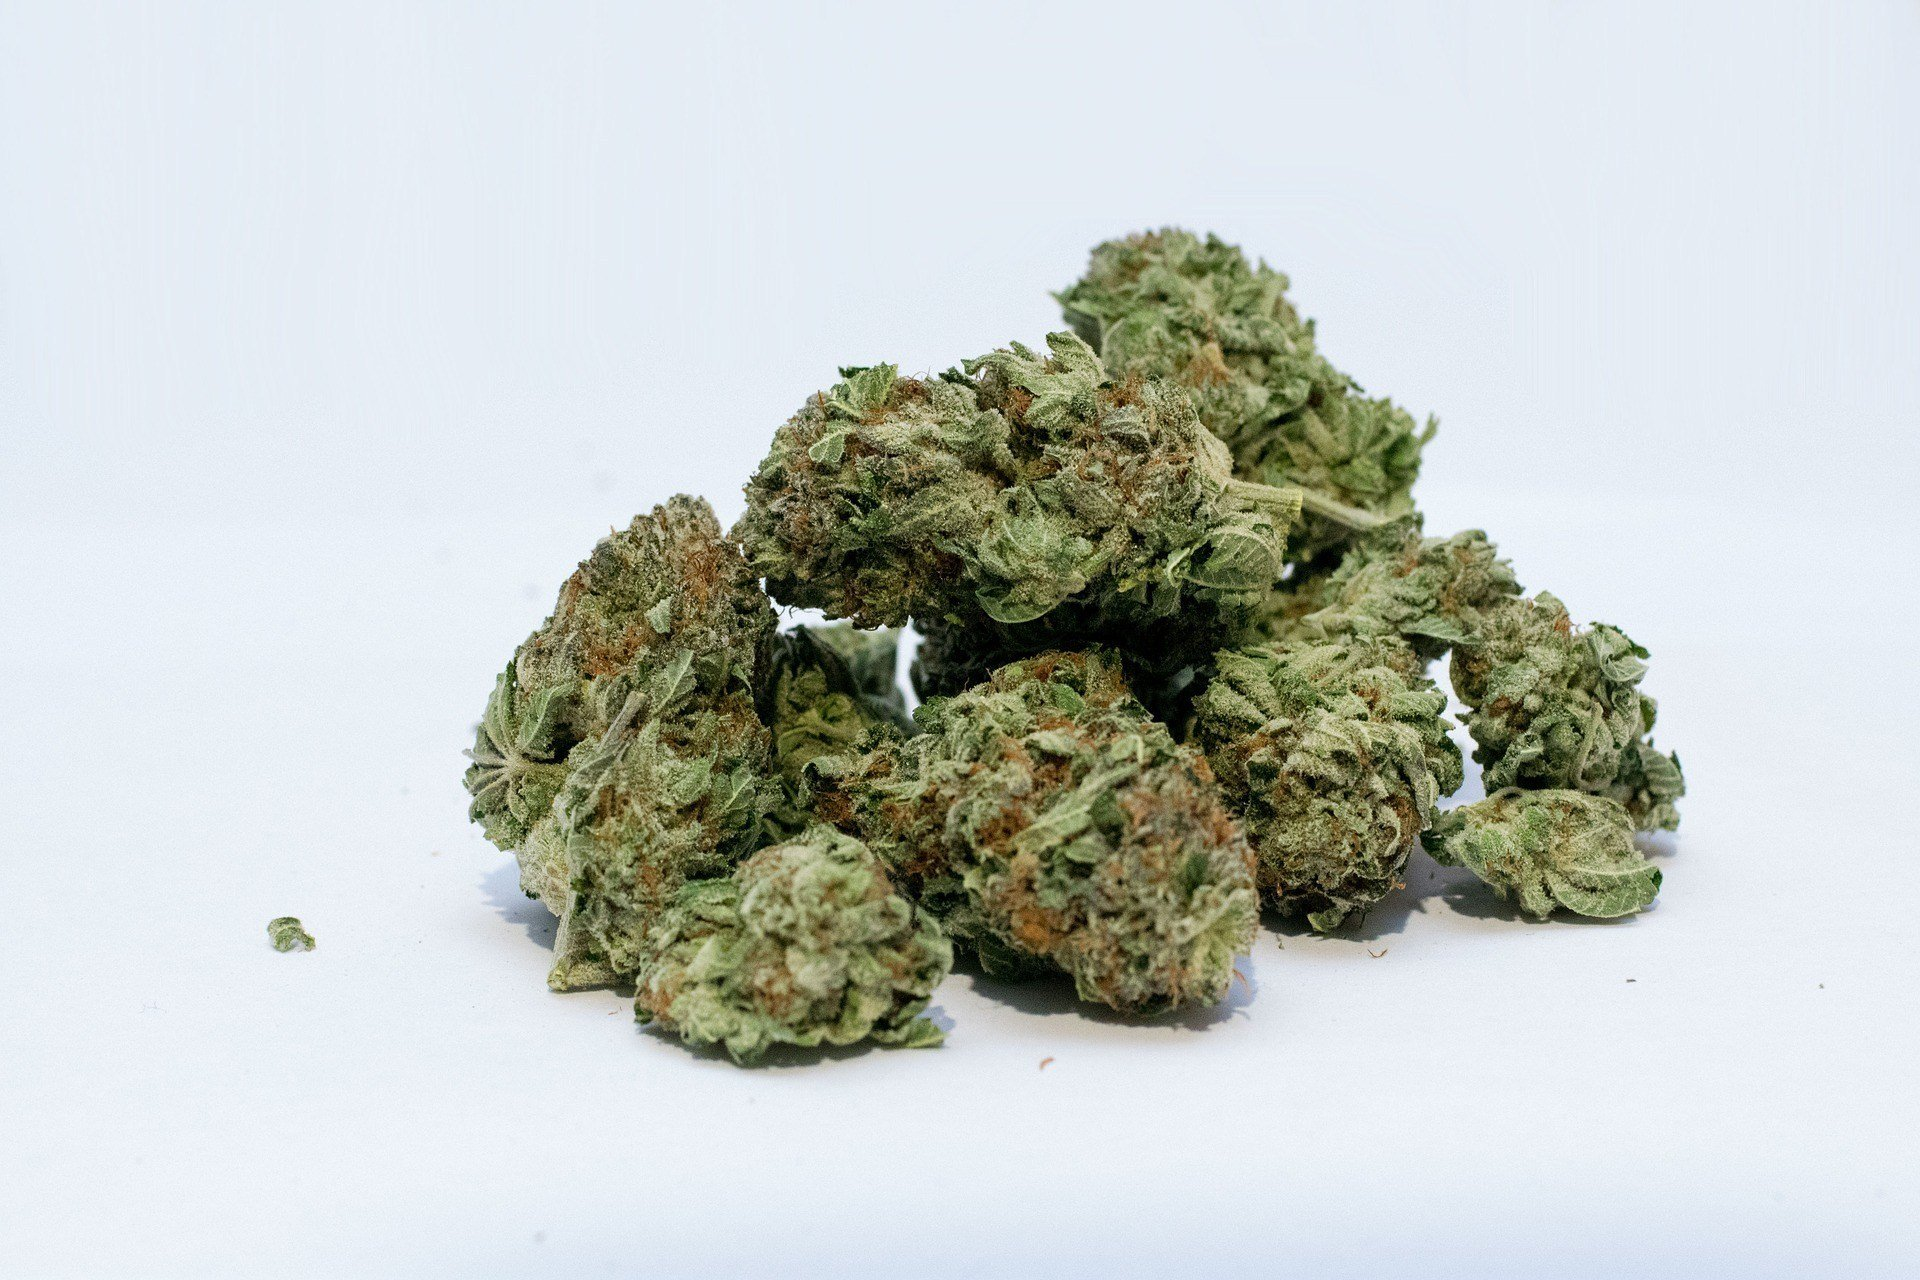 What's the real reason the Canadian government legalized weed?